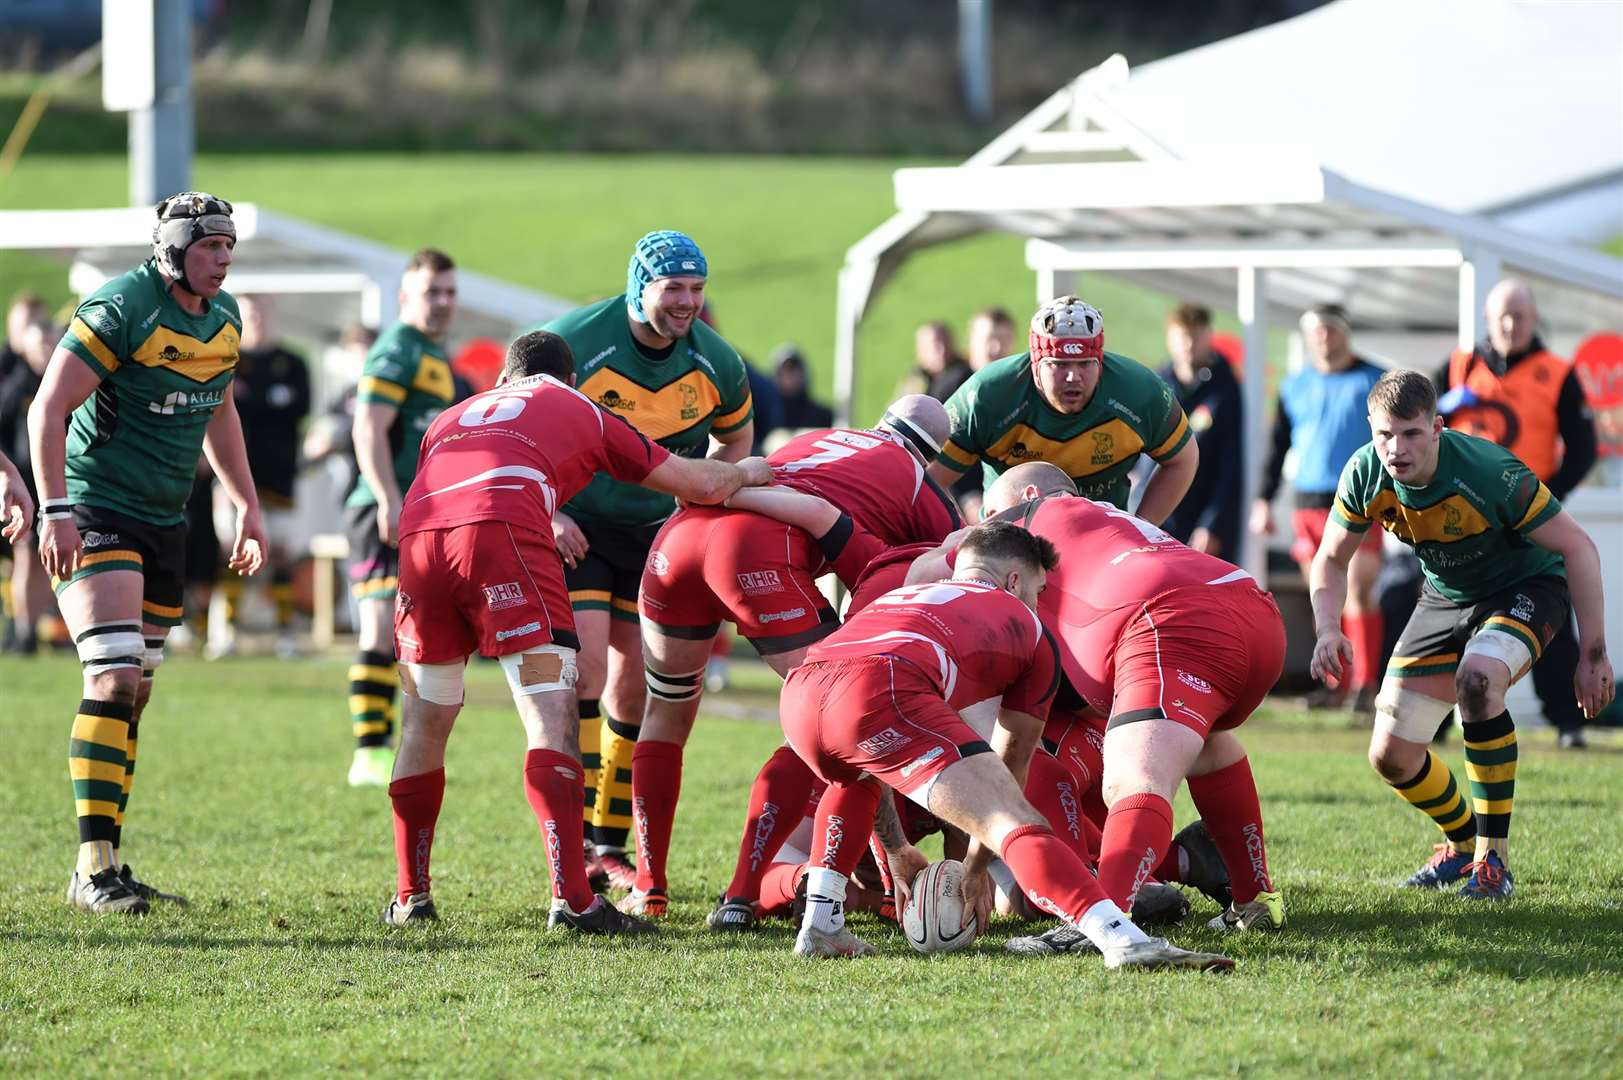 Bury St Edmunds will be hosting an inter-club match this weekend. Picture: Mecha Morton